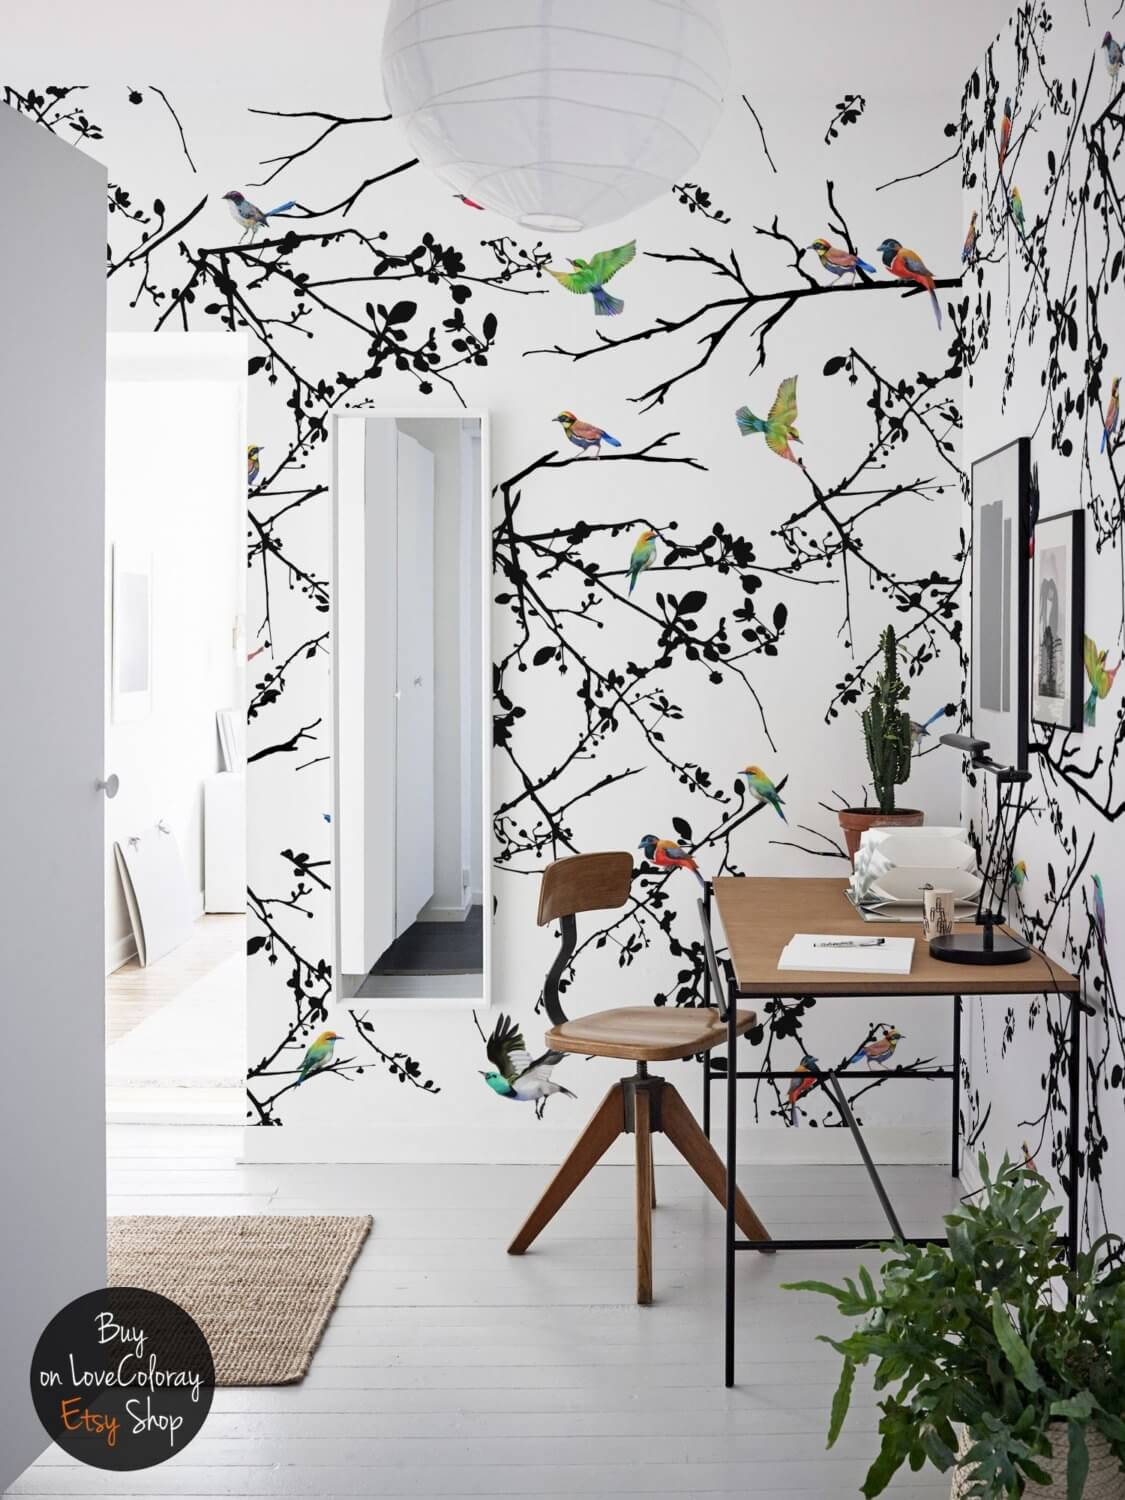 Whole Wall Bird and Branch Decor